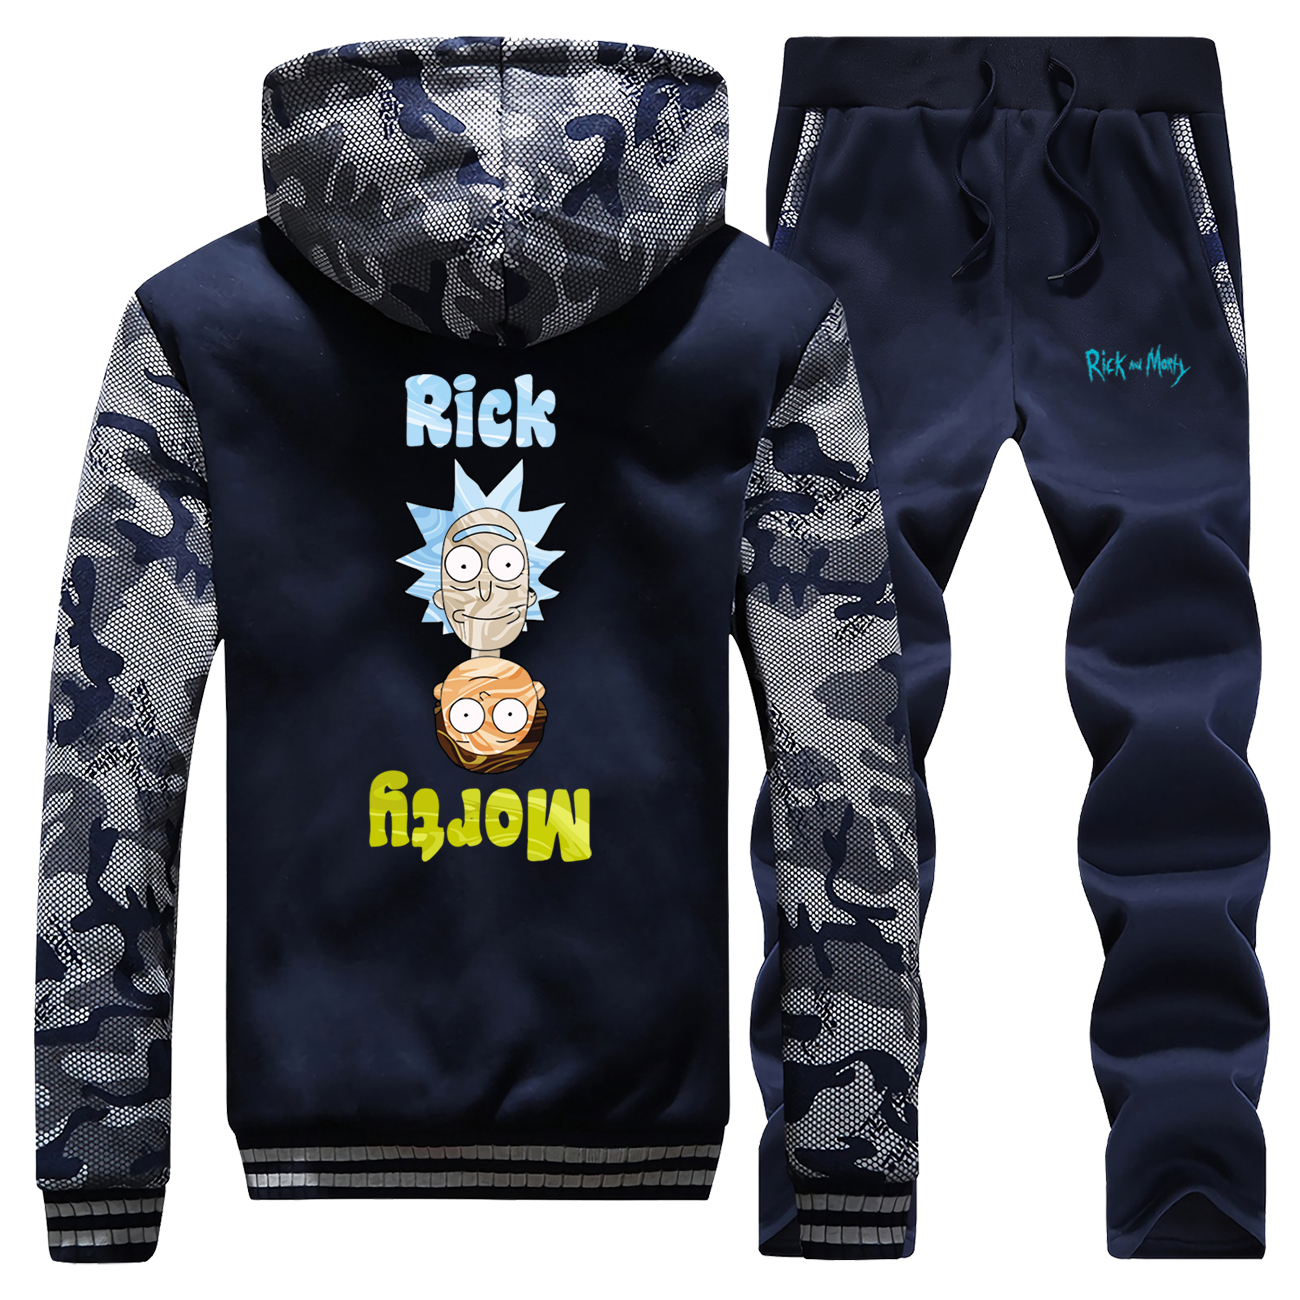 Rick And Morty Funny Printed Mens Hoodies Sweatshirt+Pants 2 Piece Sets Warm Hoodie Winter Jacket Tracksuit Thick Fleece Coat